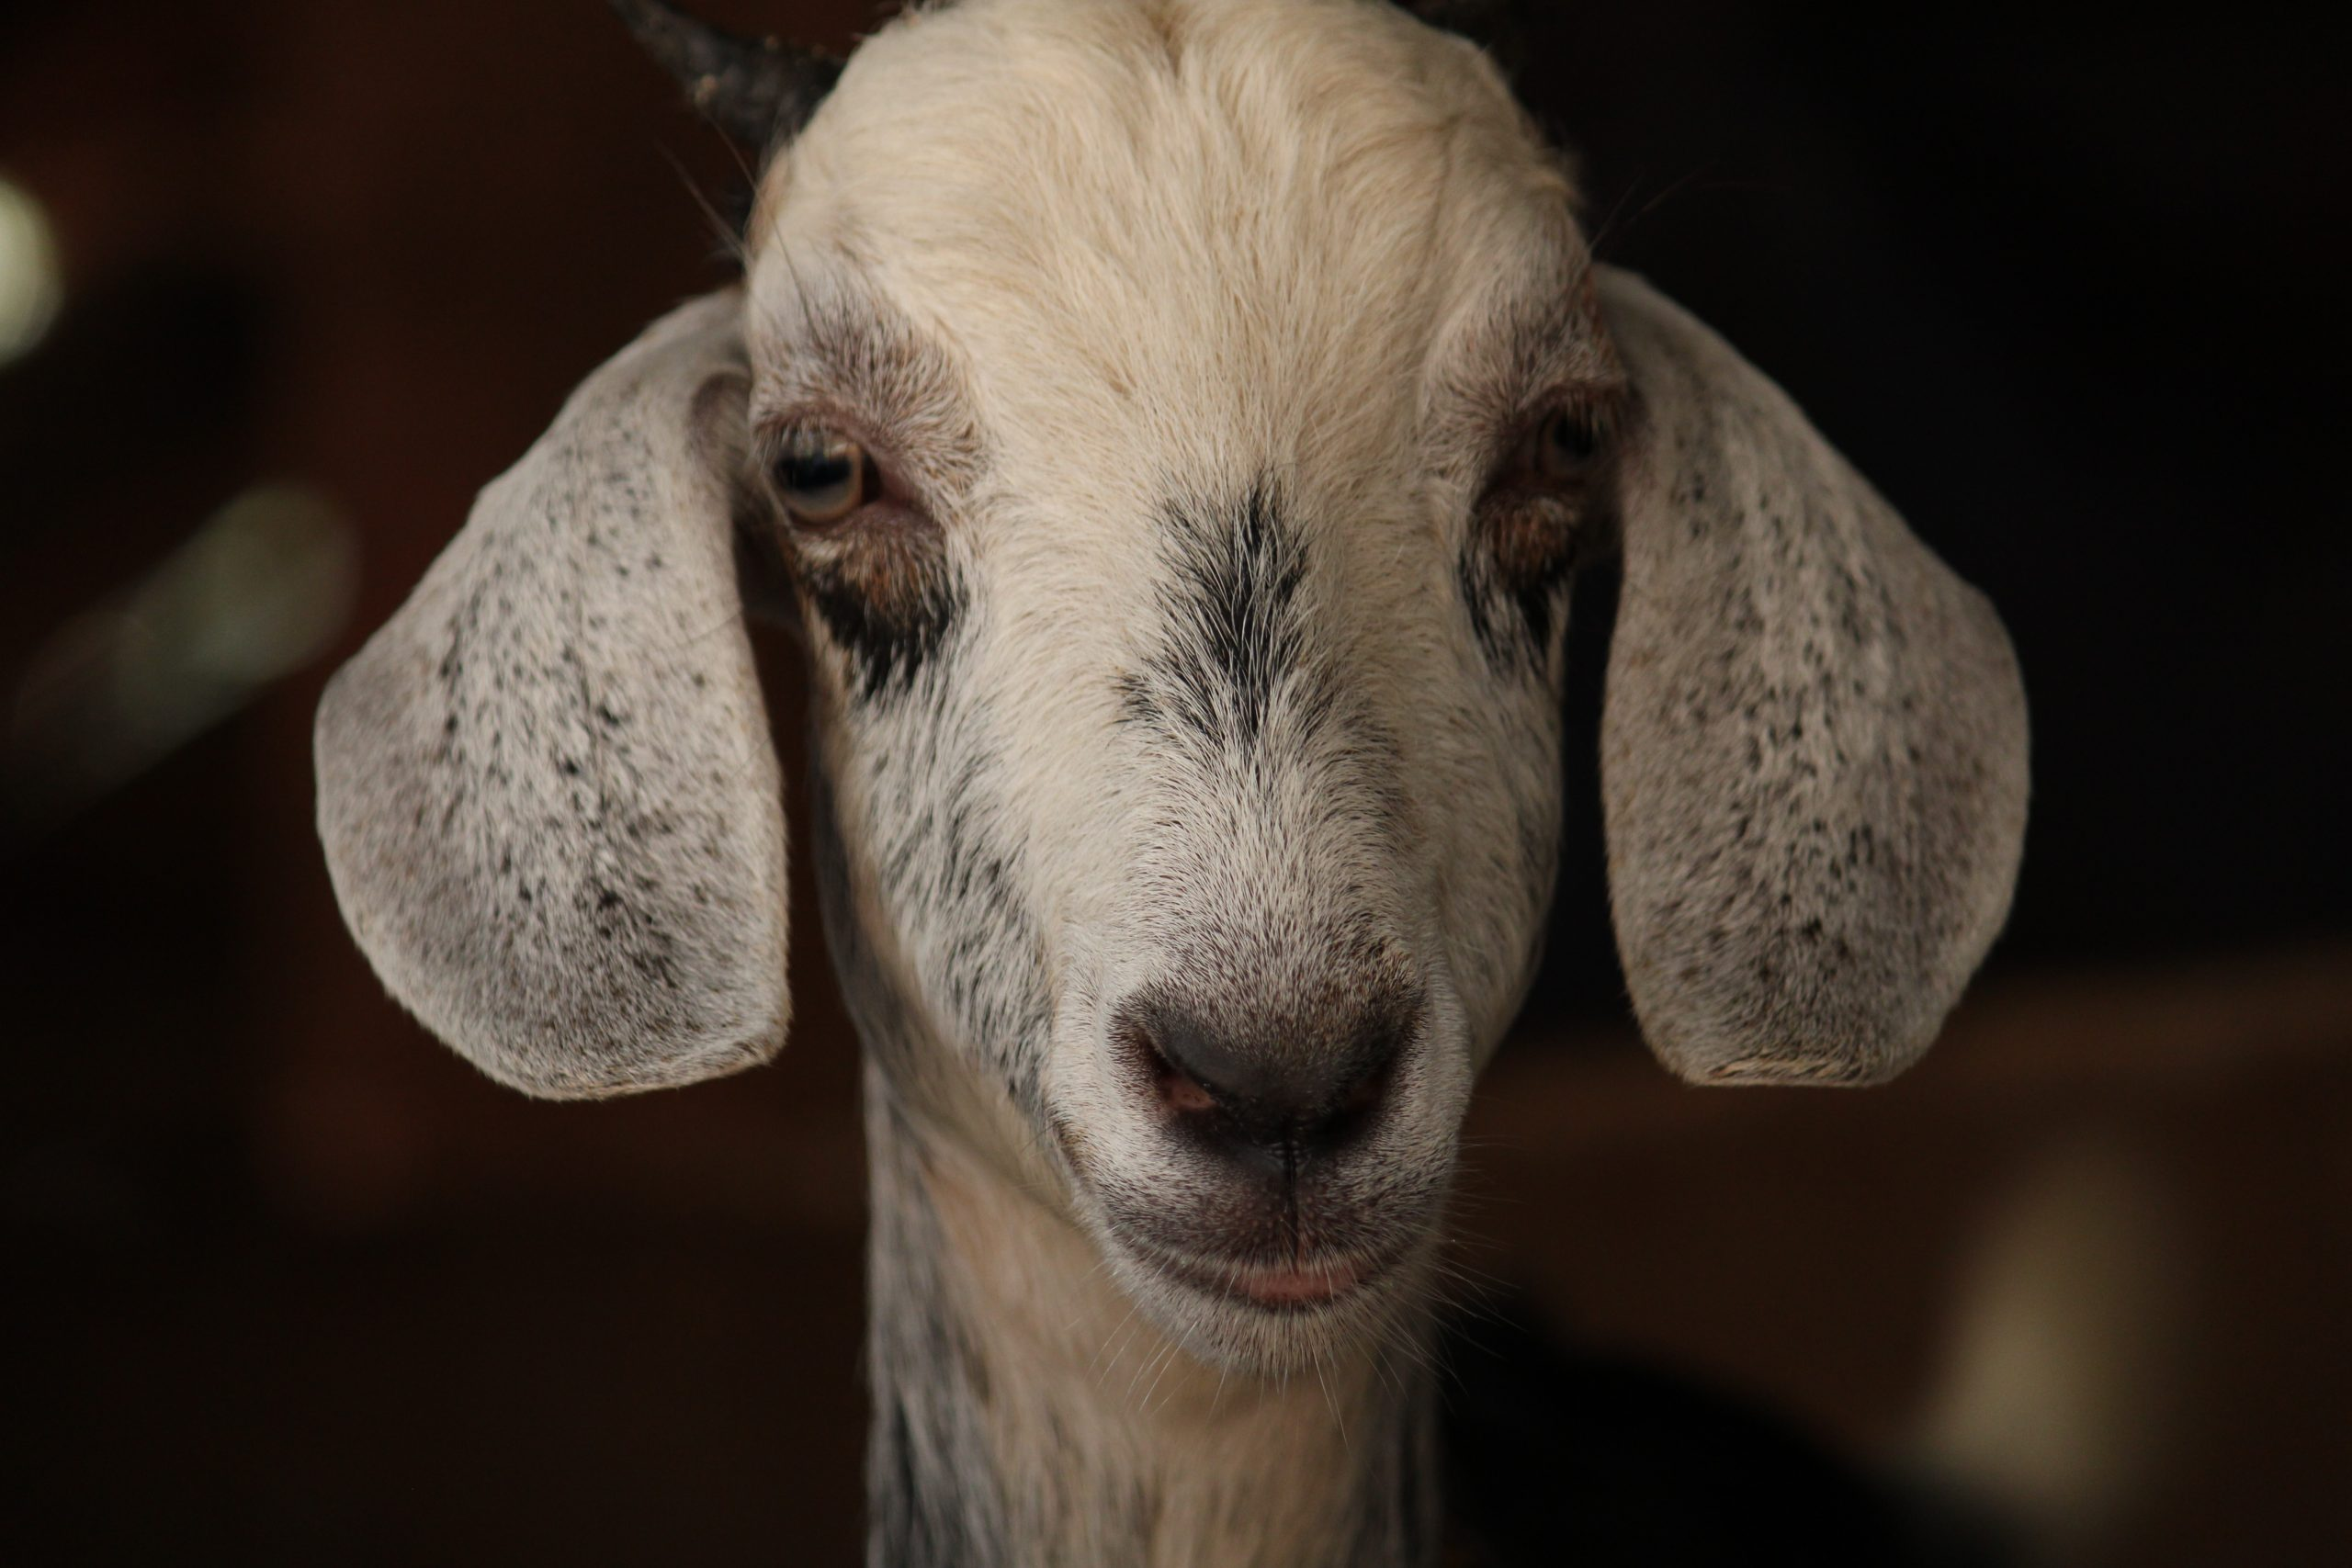 A goat looking